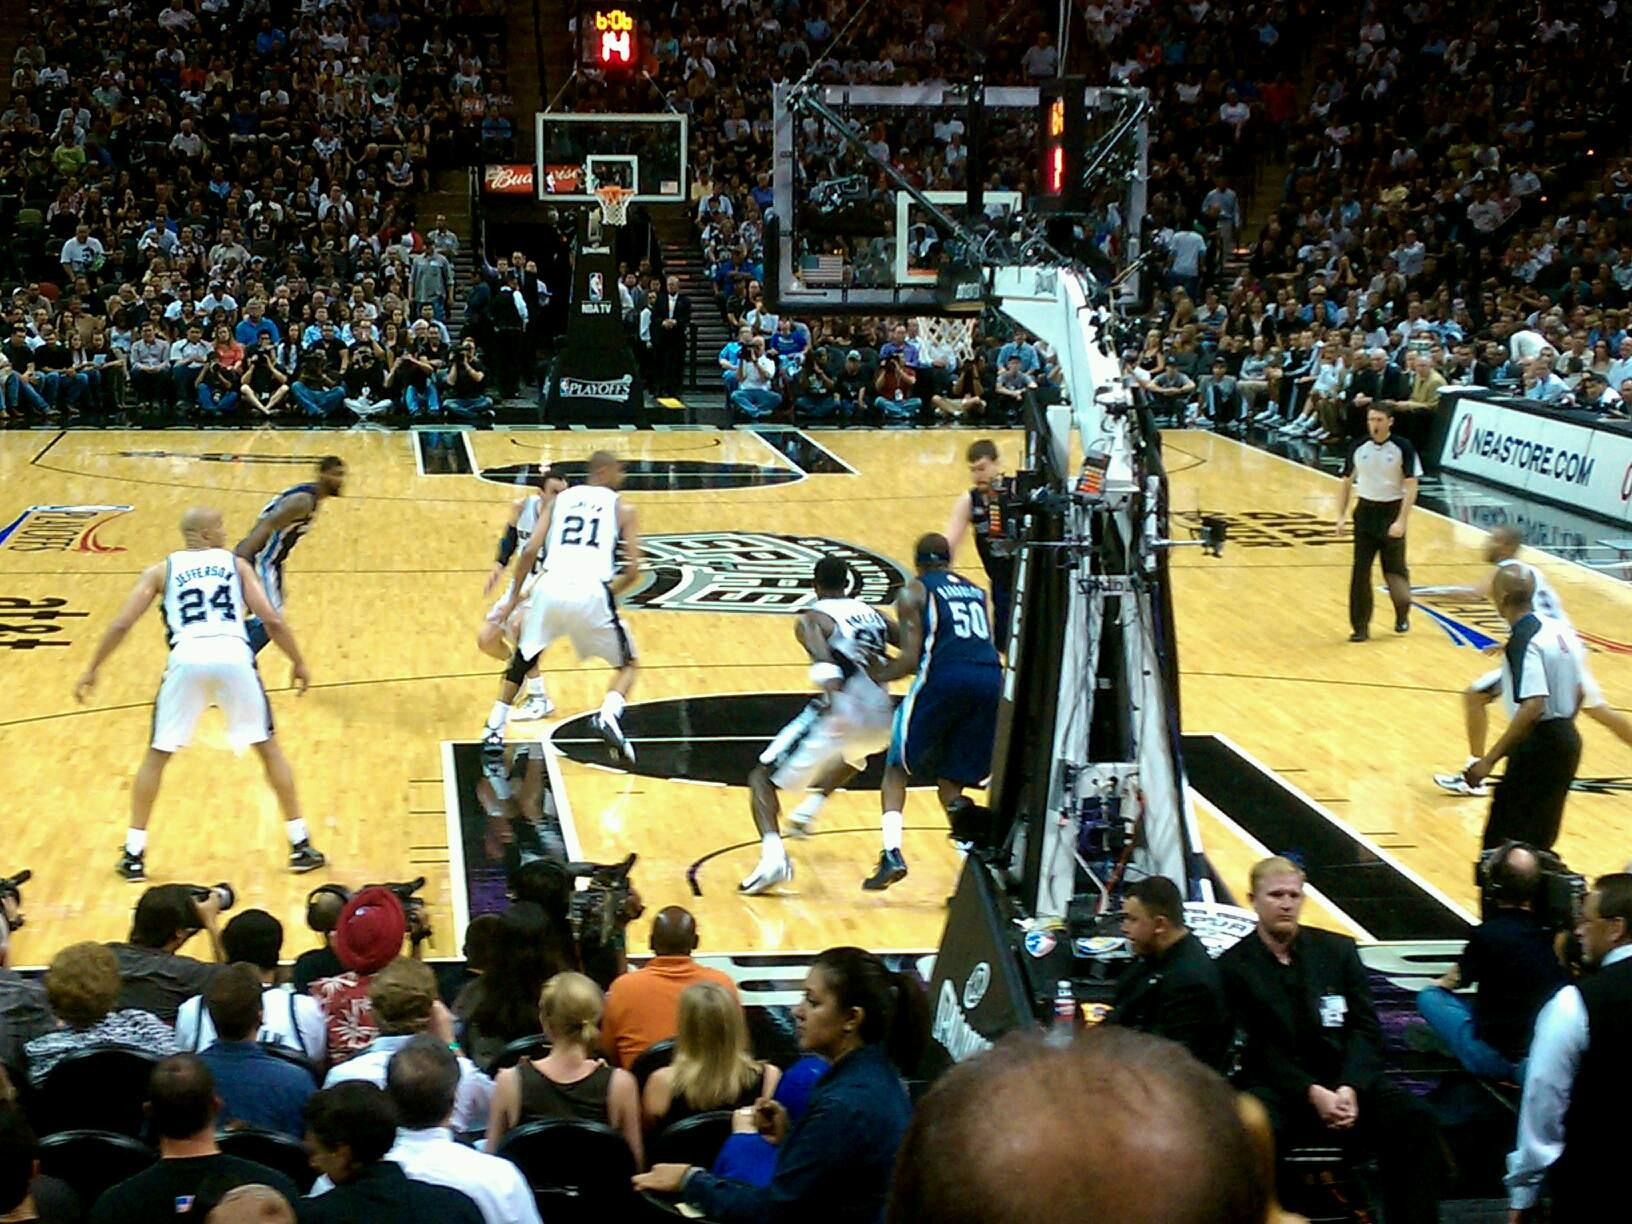 AT&T Center Section 115 Row 14 Seat 1